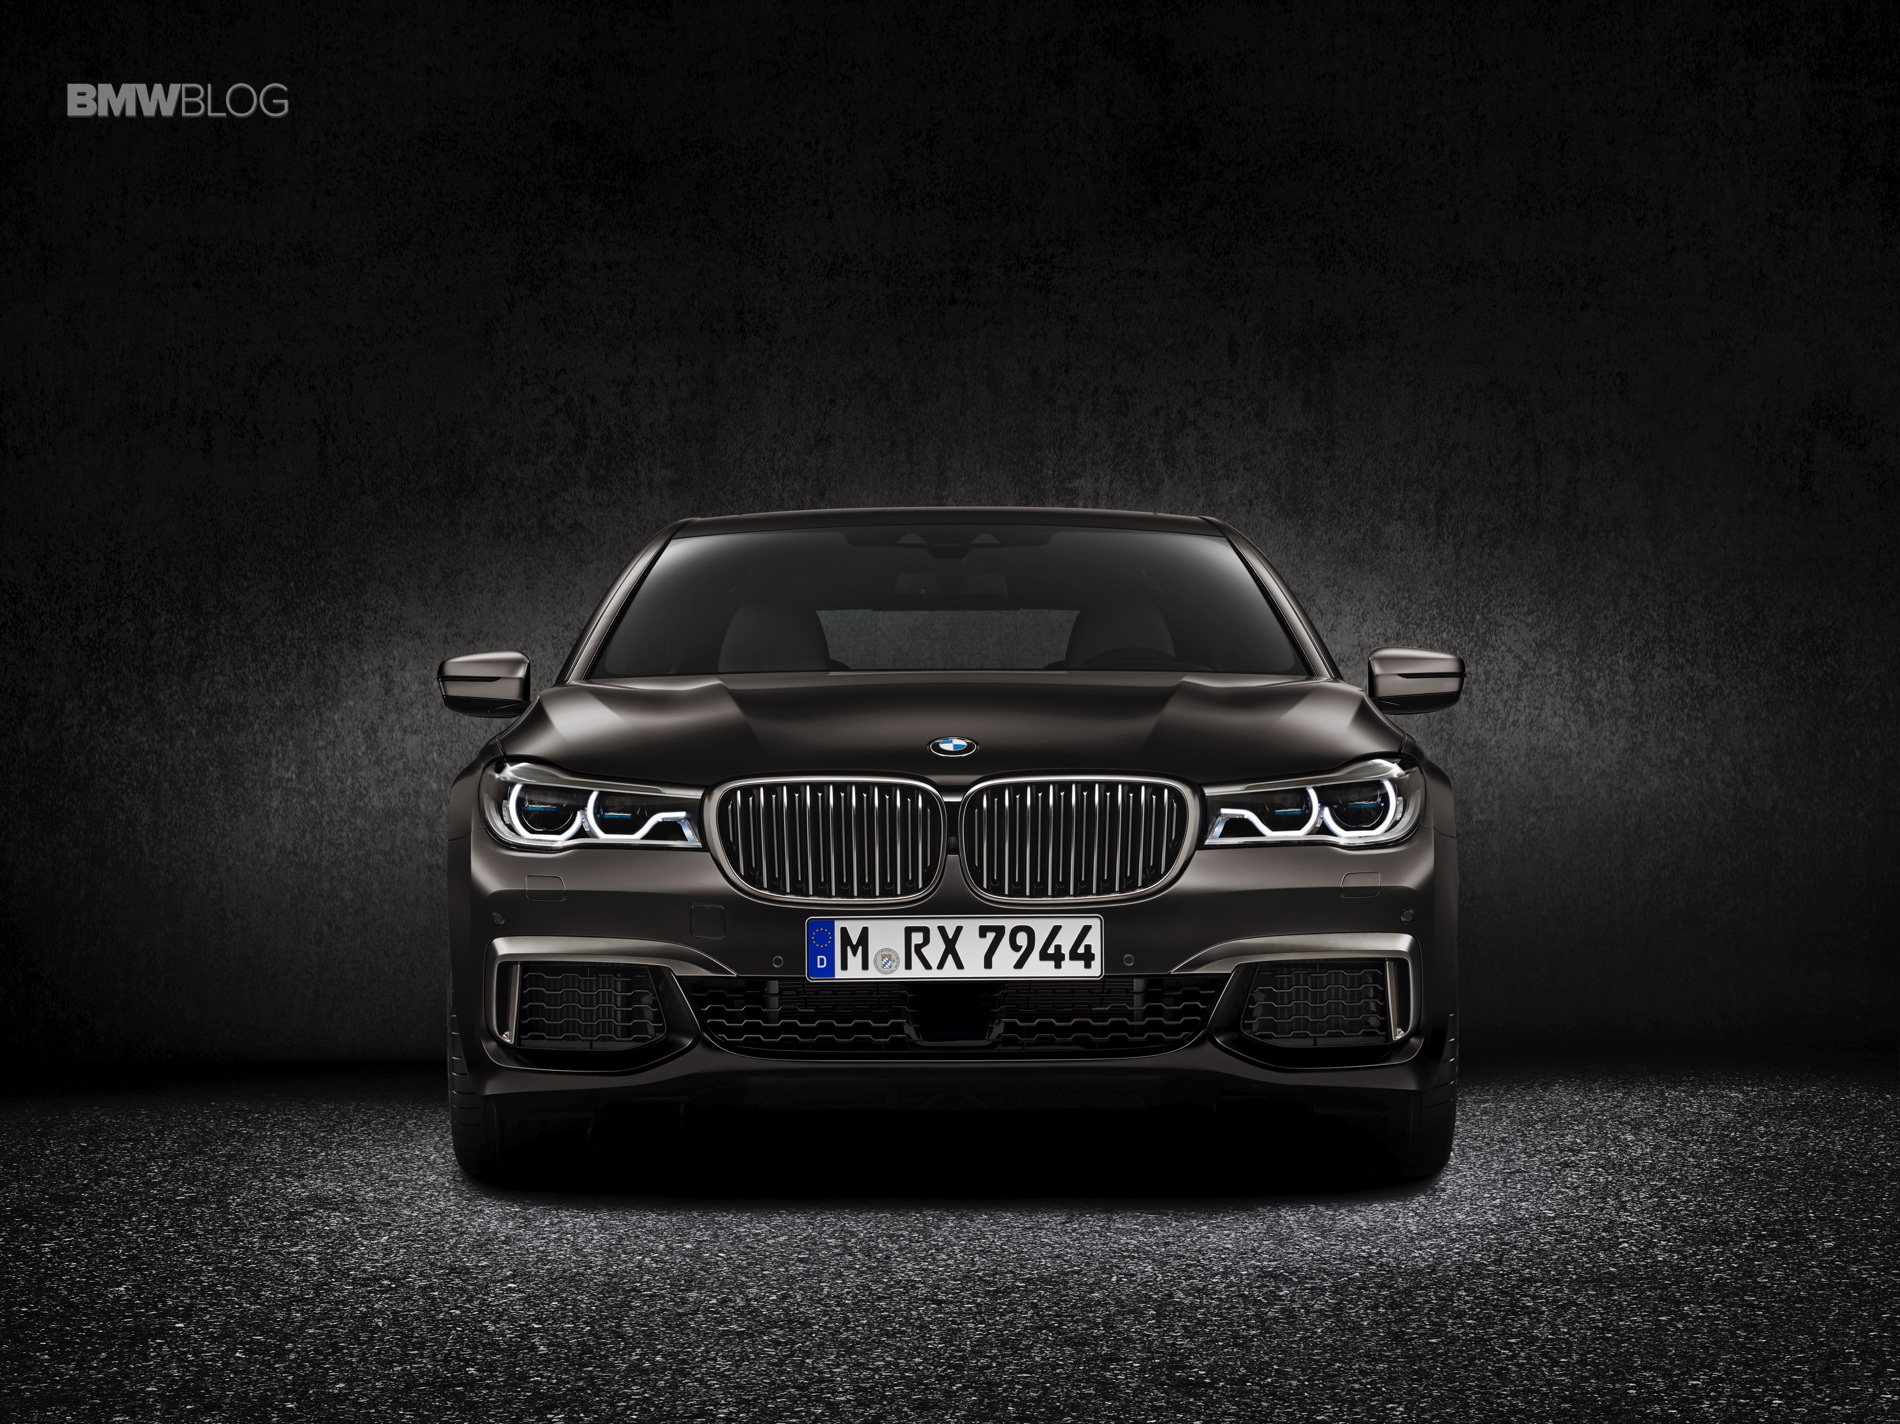 BMW M760Li xDrive images 3